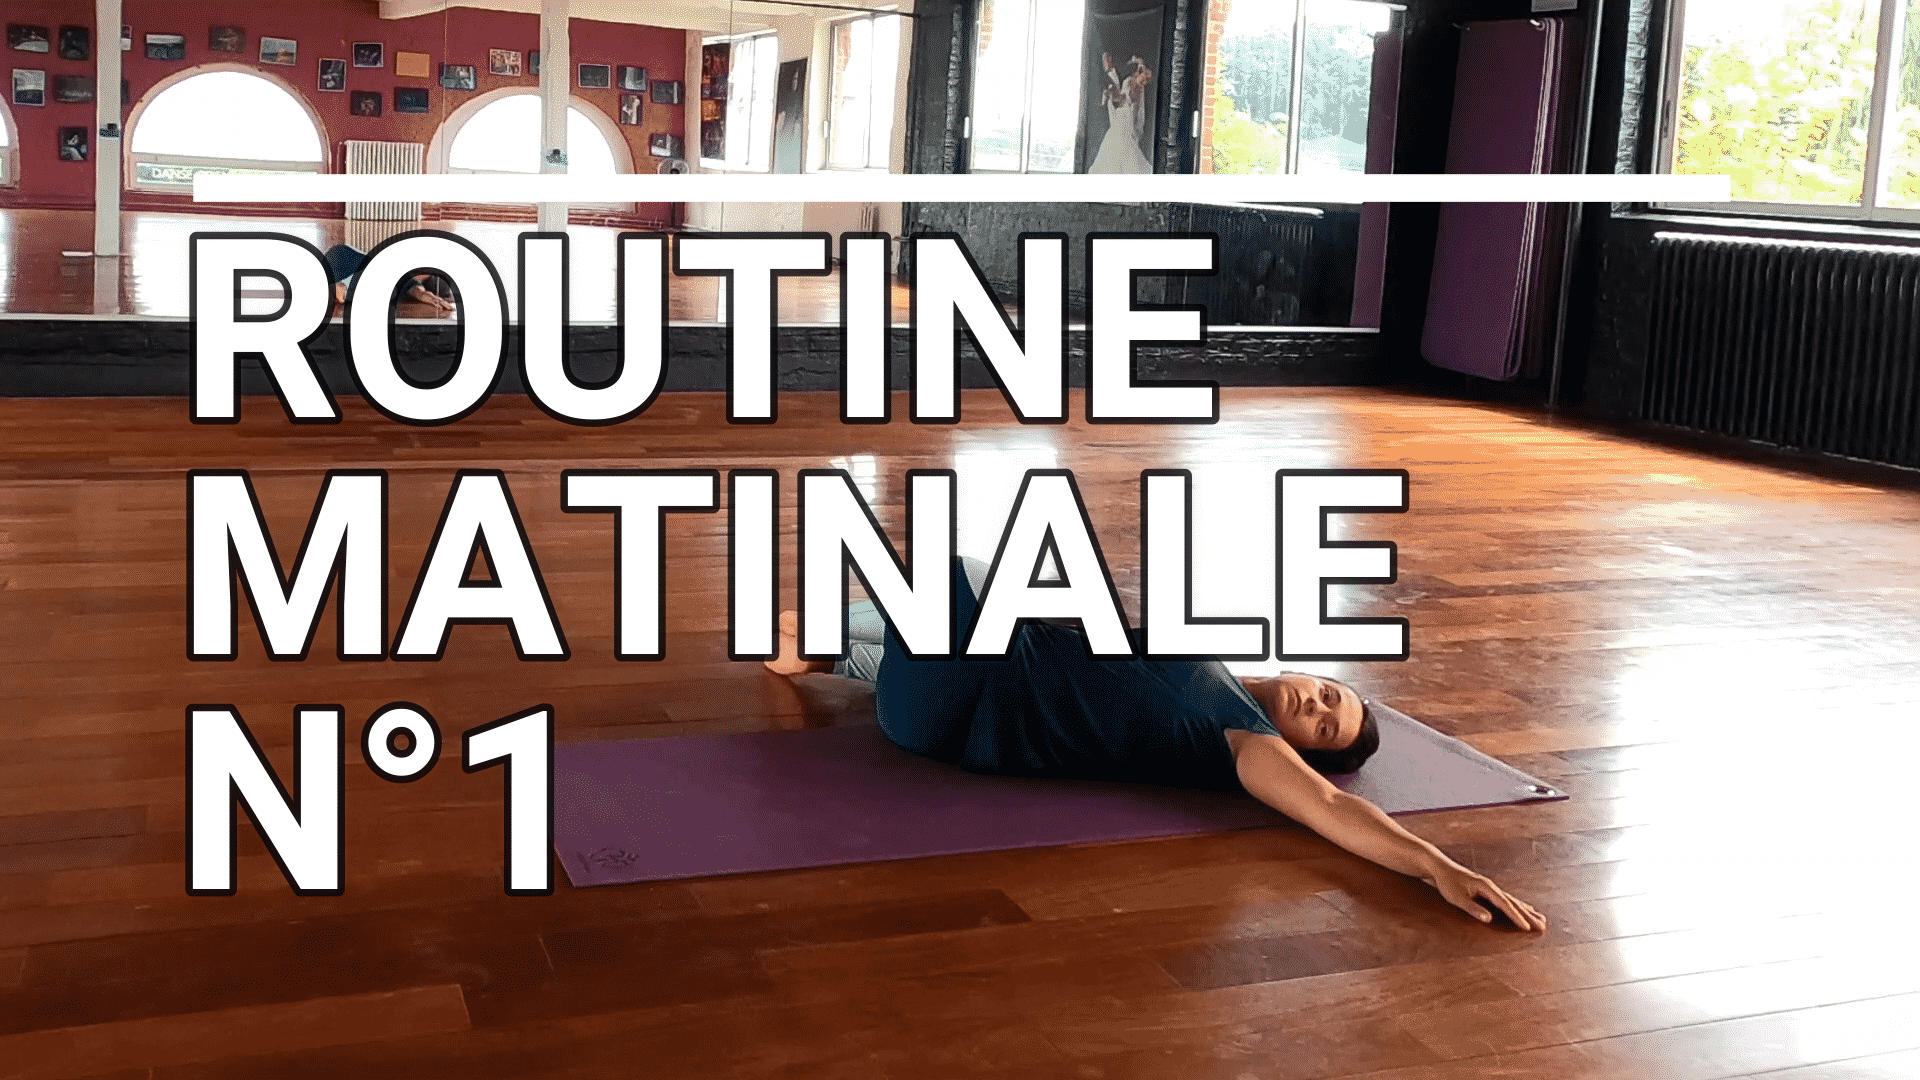 Routine matinale n°1